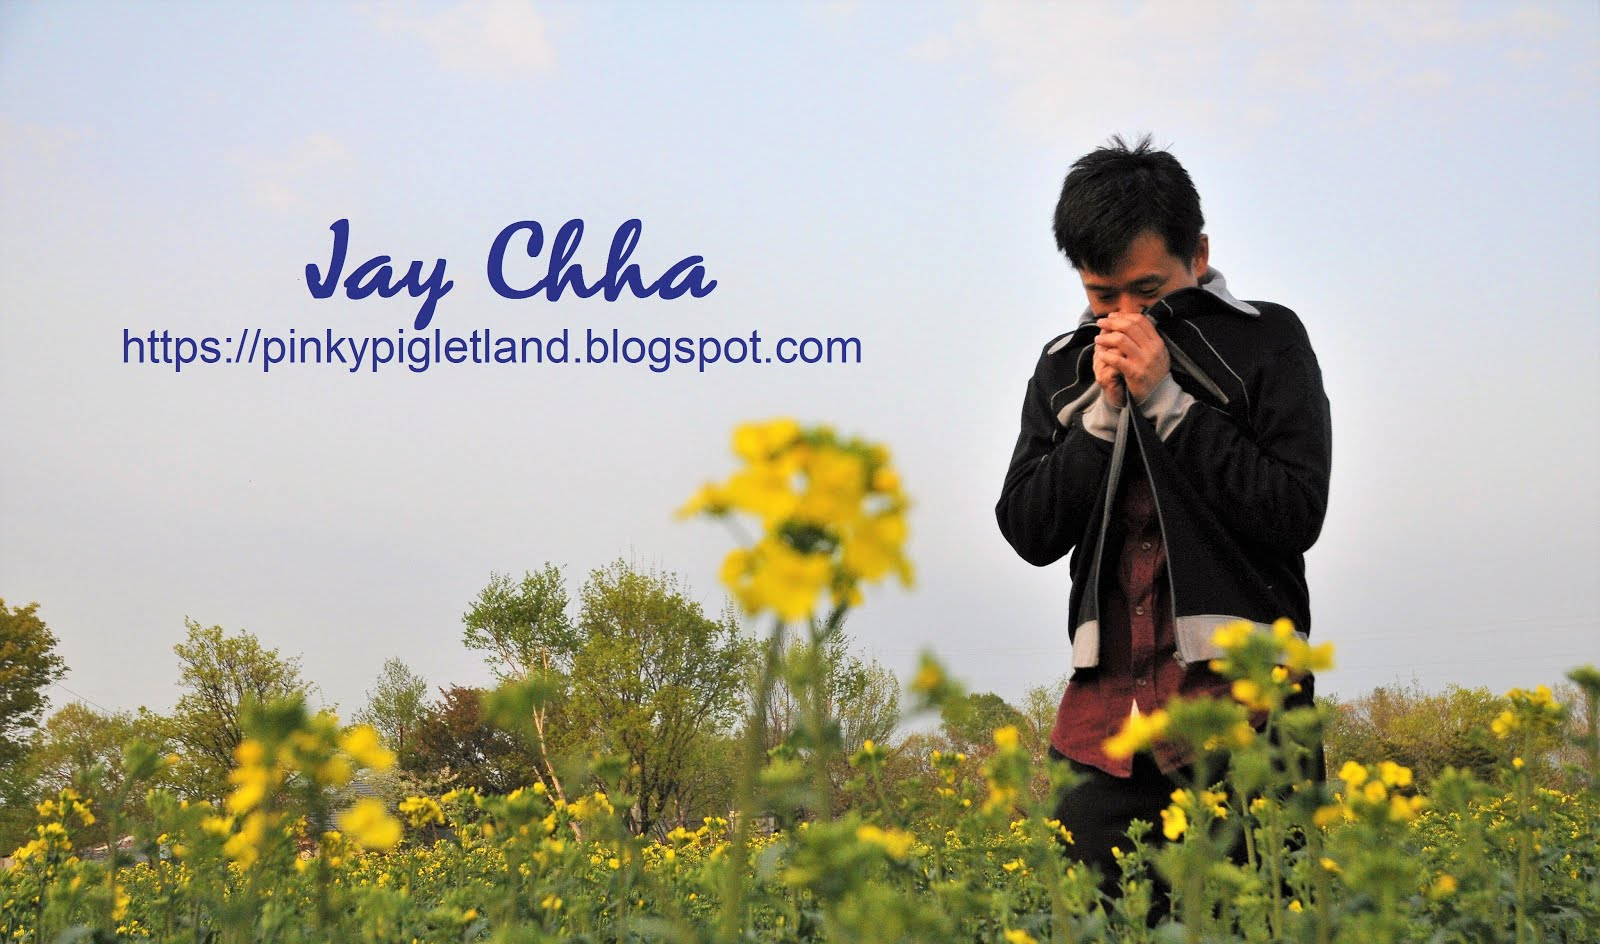 Jay Chha the Blogger